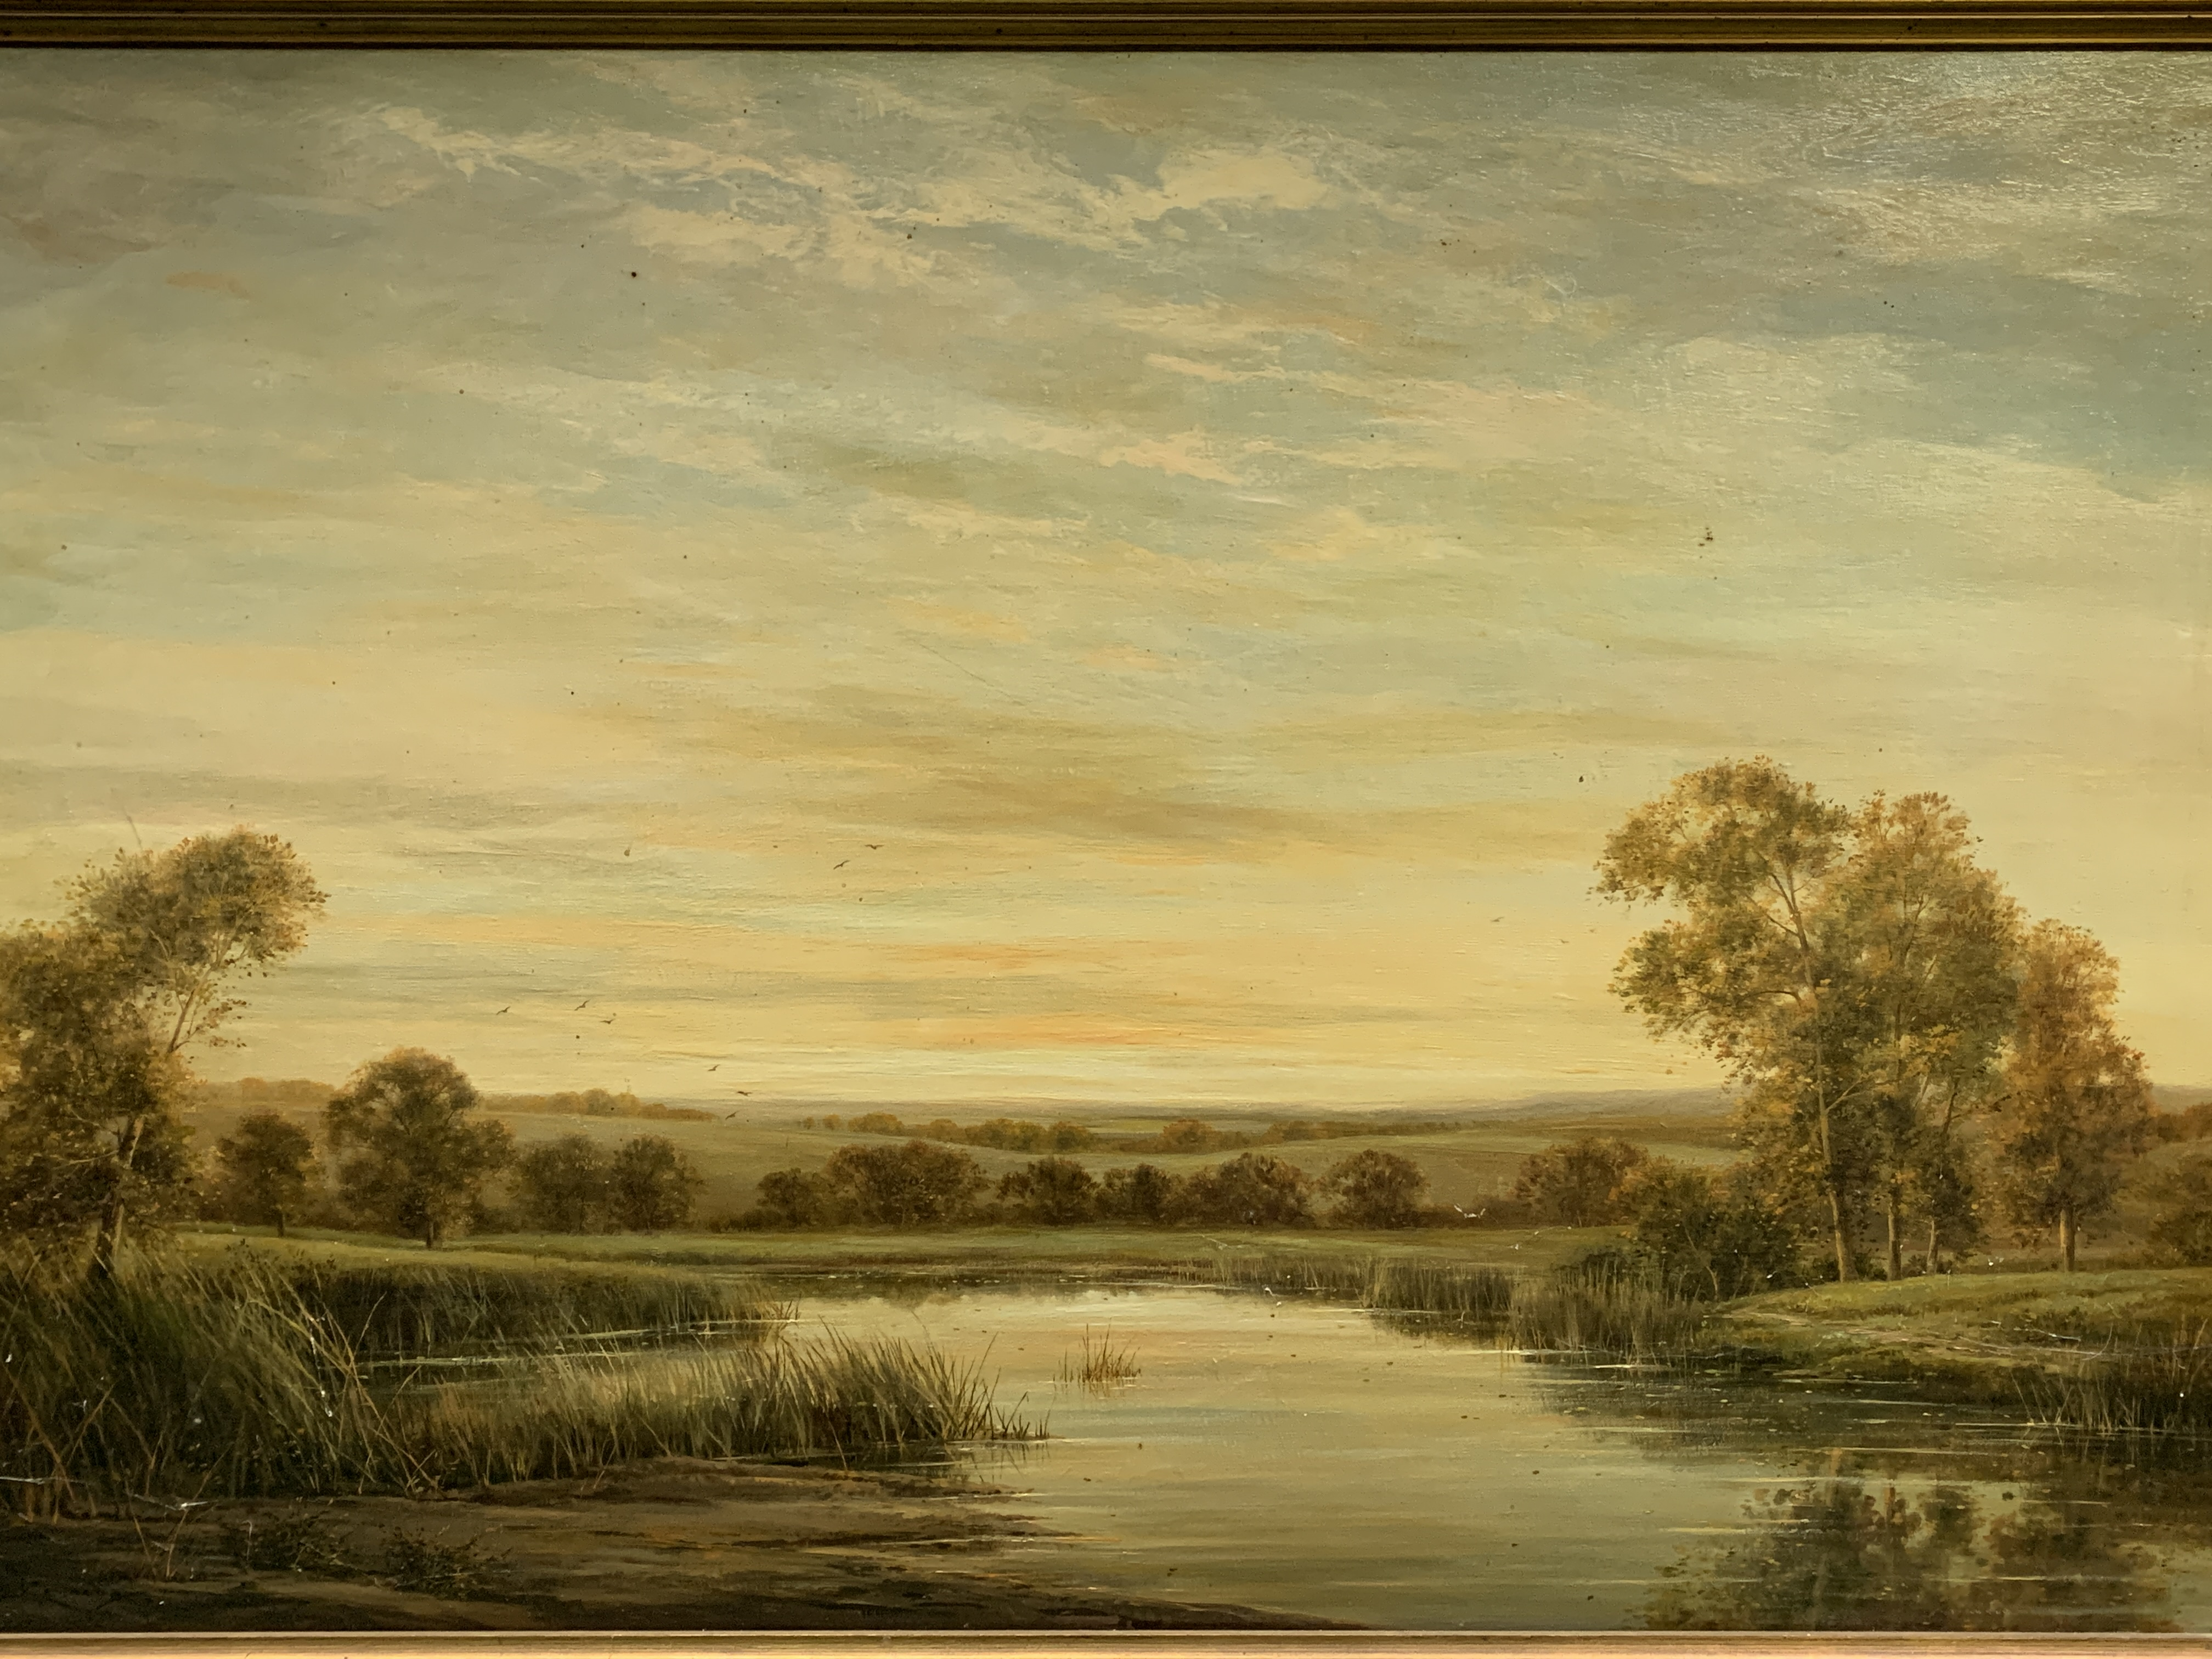 """Gilt framed oil on canvas of a river and landscape, written on reverse """"On the River Kennett"""" - Image 2 of 5"""